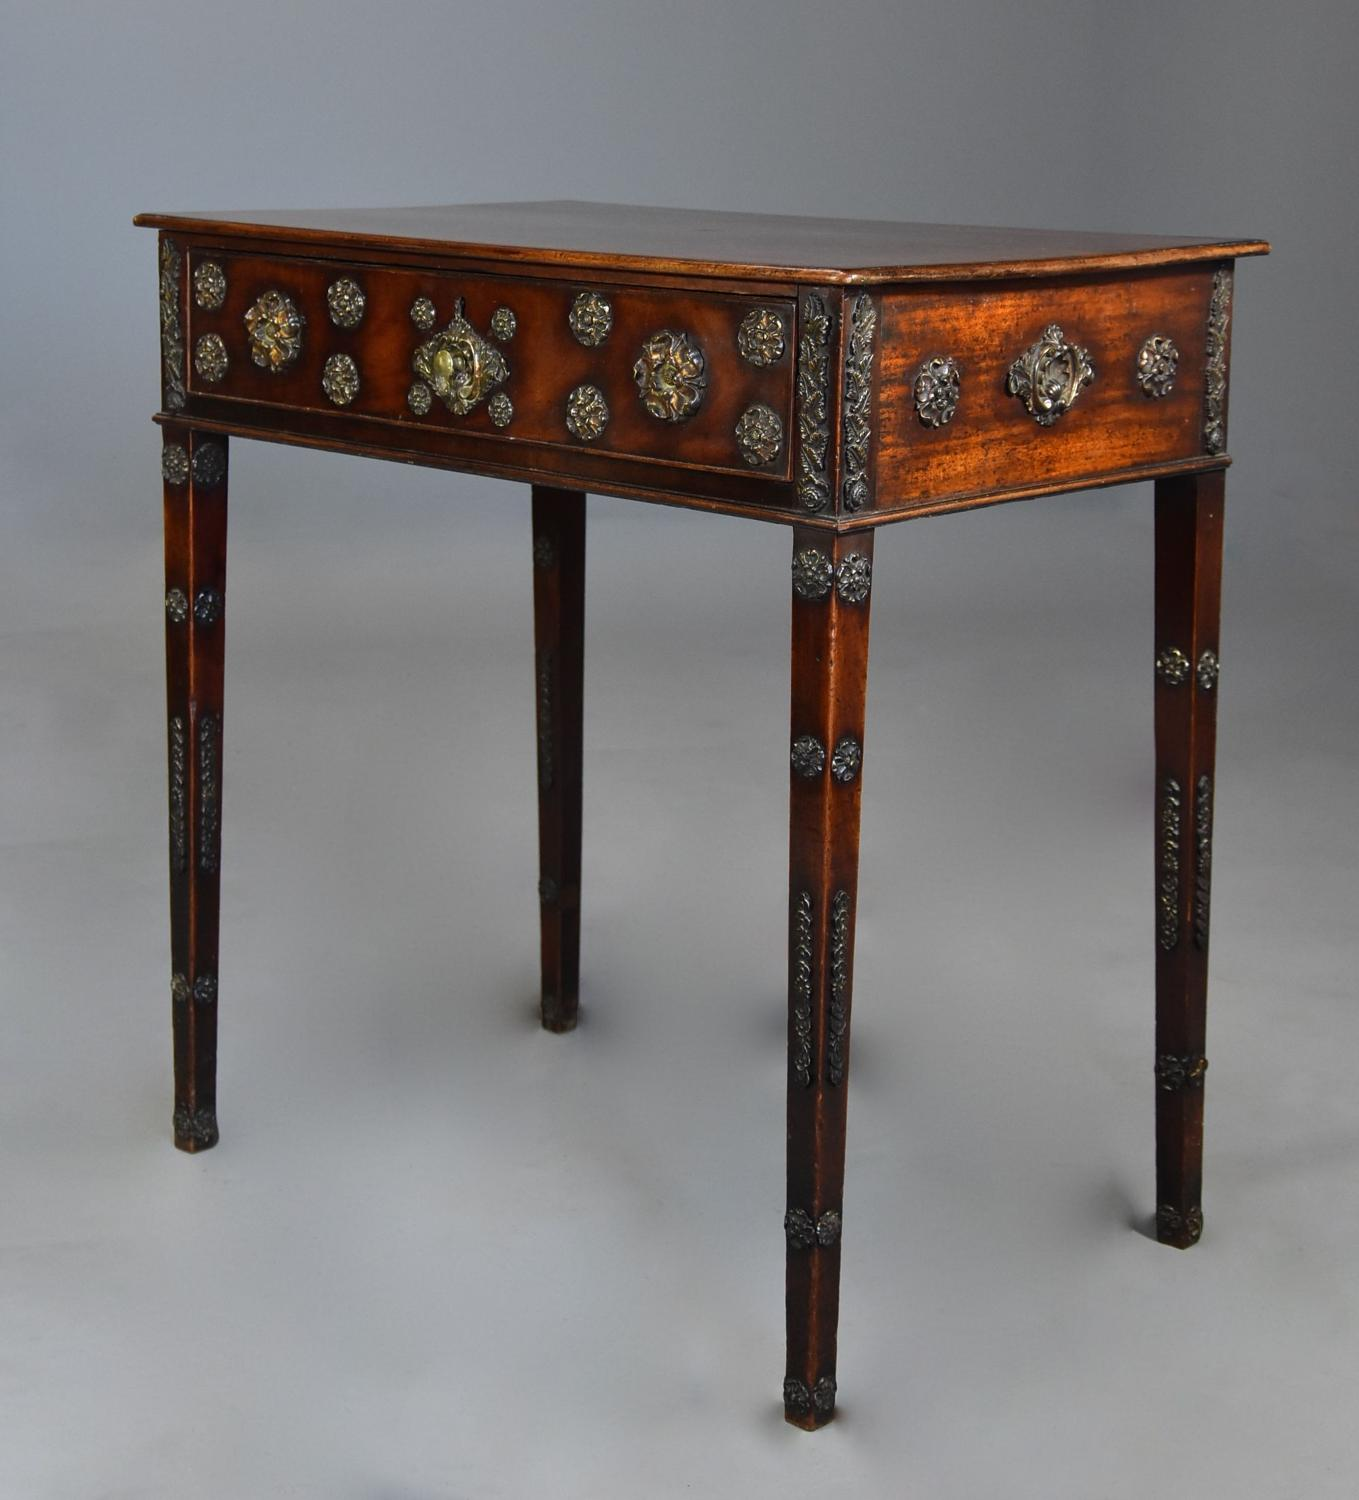 Highly decorative late 18thc mahogany table with brass decoration